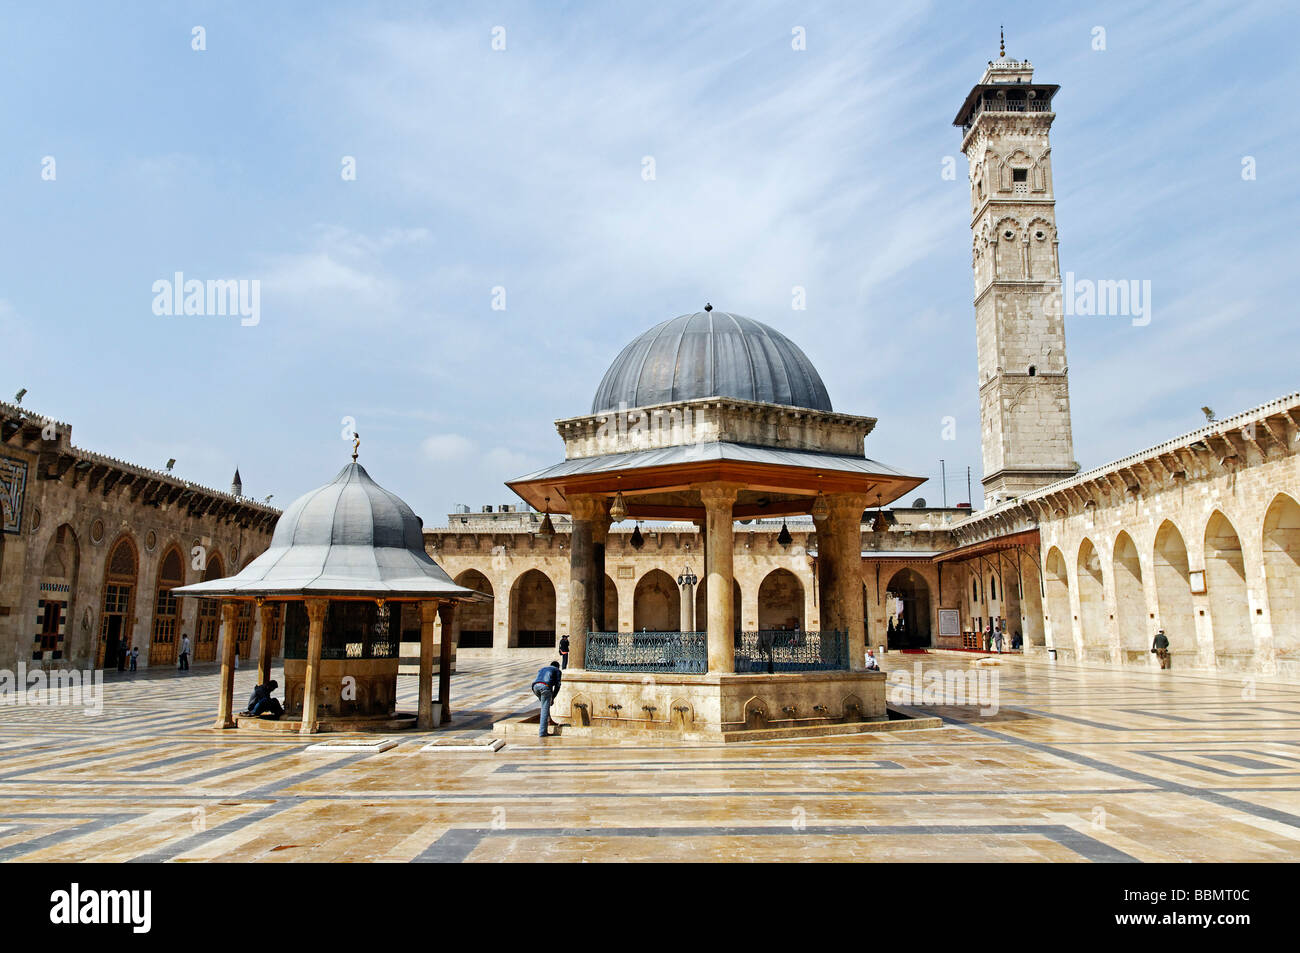 Umayyad Mosque, Grand Mosque in the historic centre of Aleppo, Syria, Middle East, Asia Stock Photo